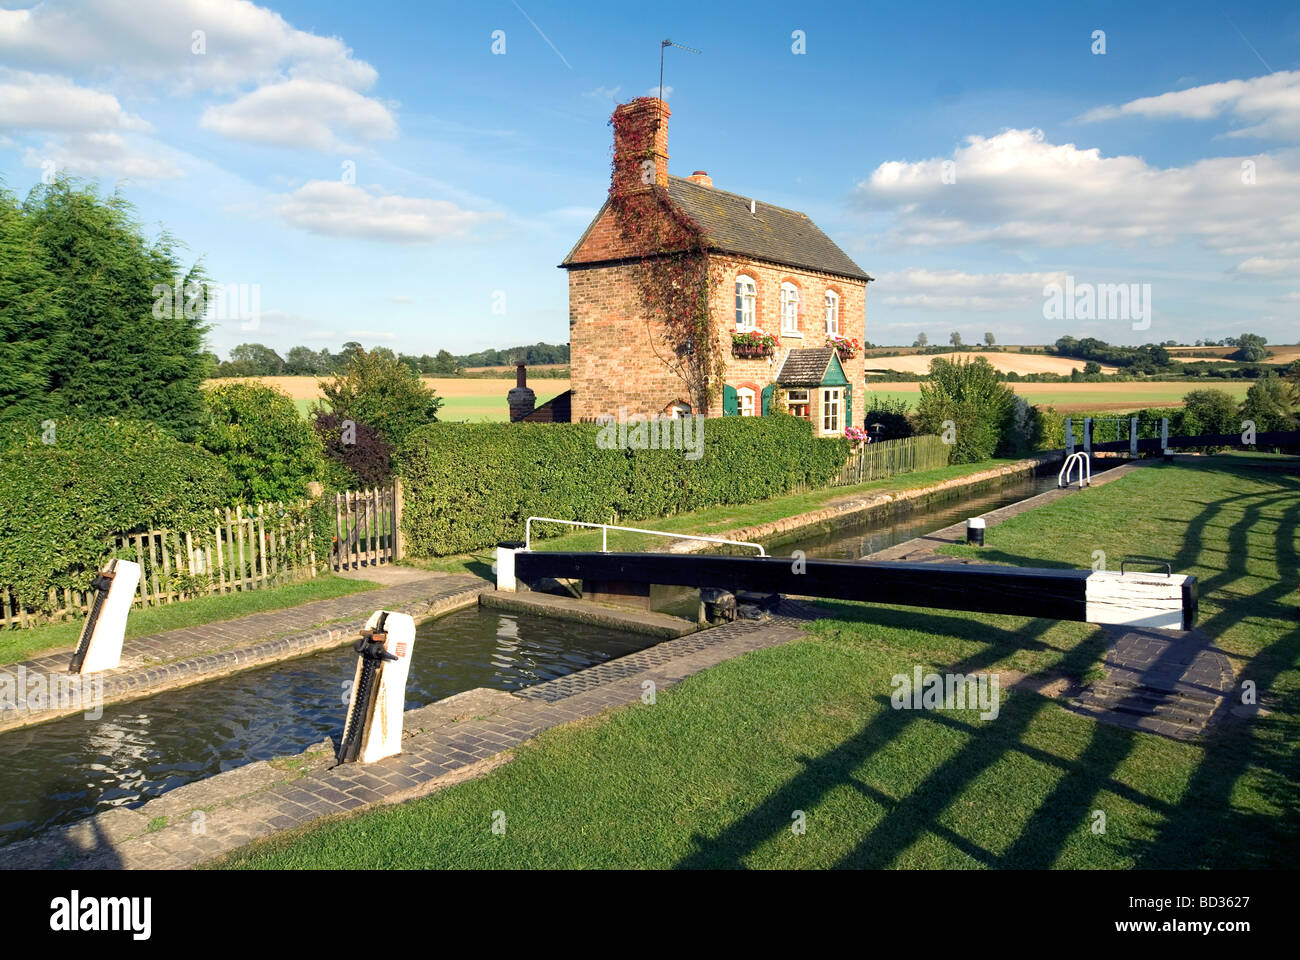 Narrowboat inside Somerton Deep Lock on the Southern Oxford Canal Doug Blane - Stock Image